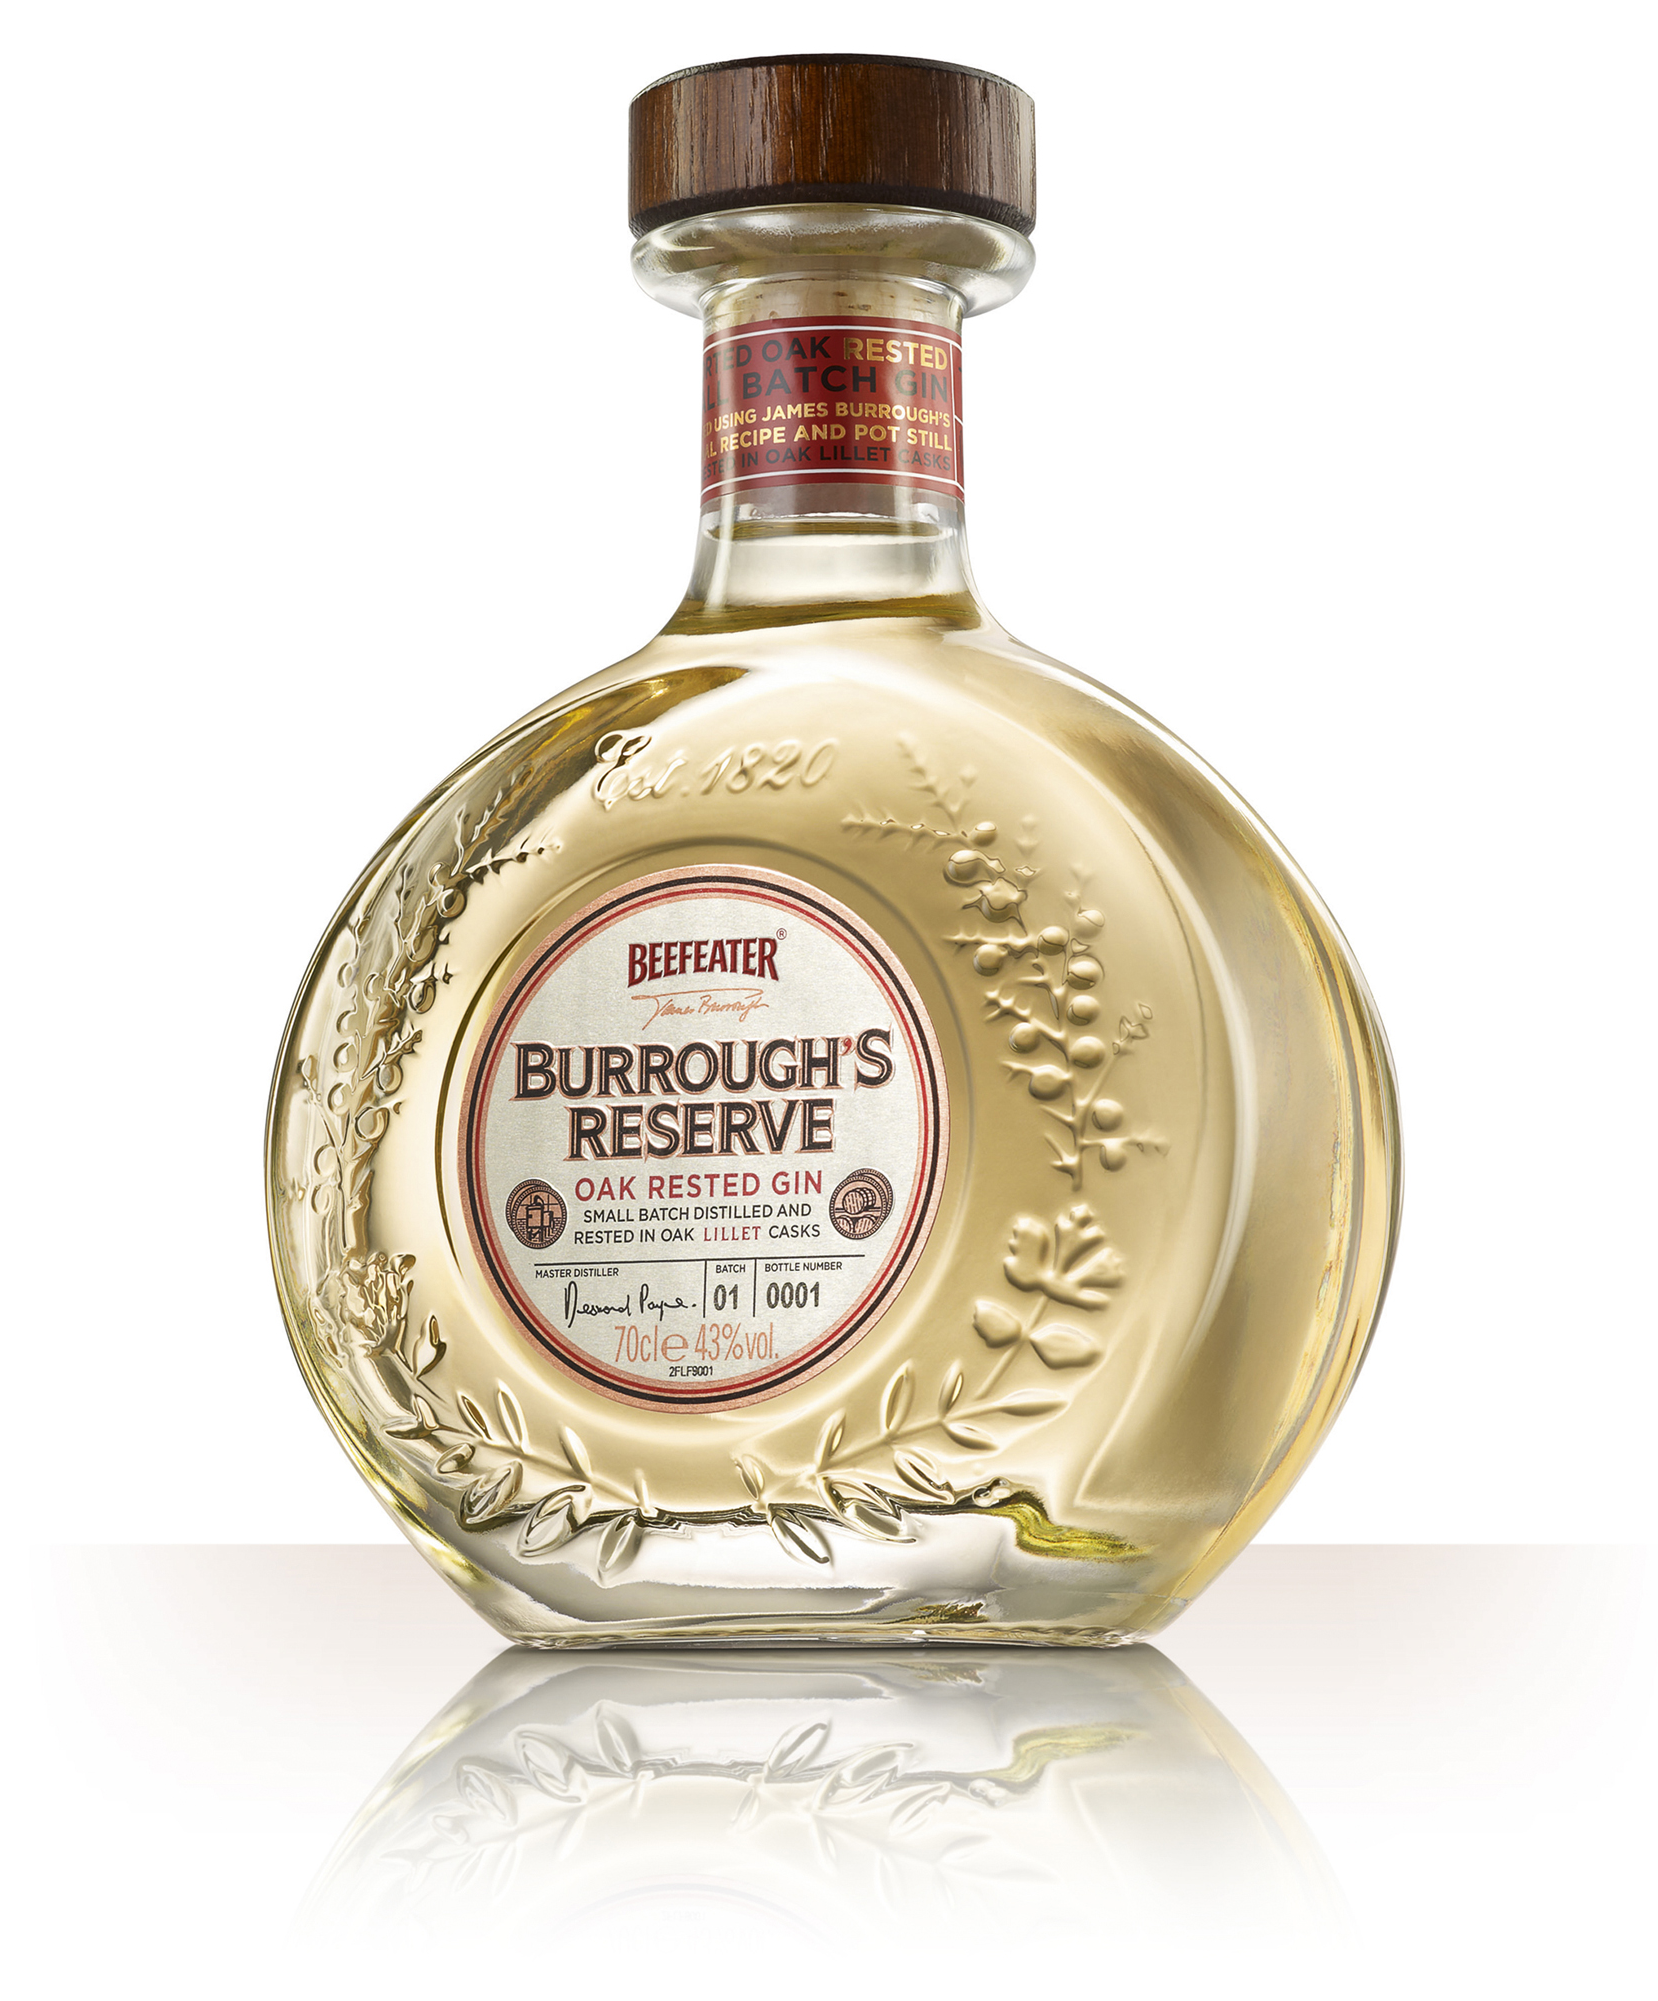 Photo: Beefeater Burrough's Reserve